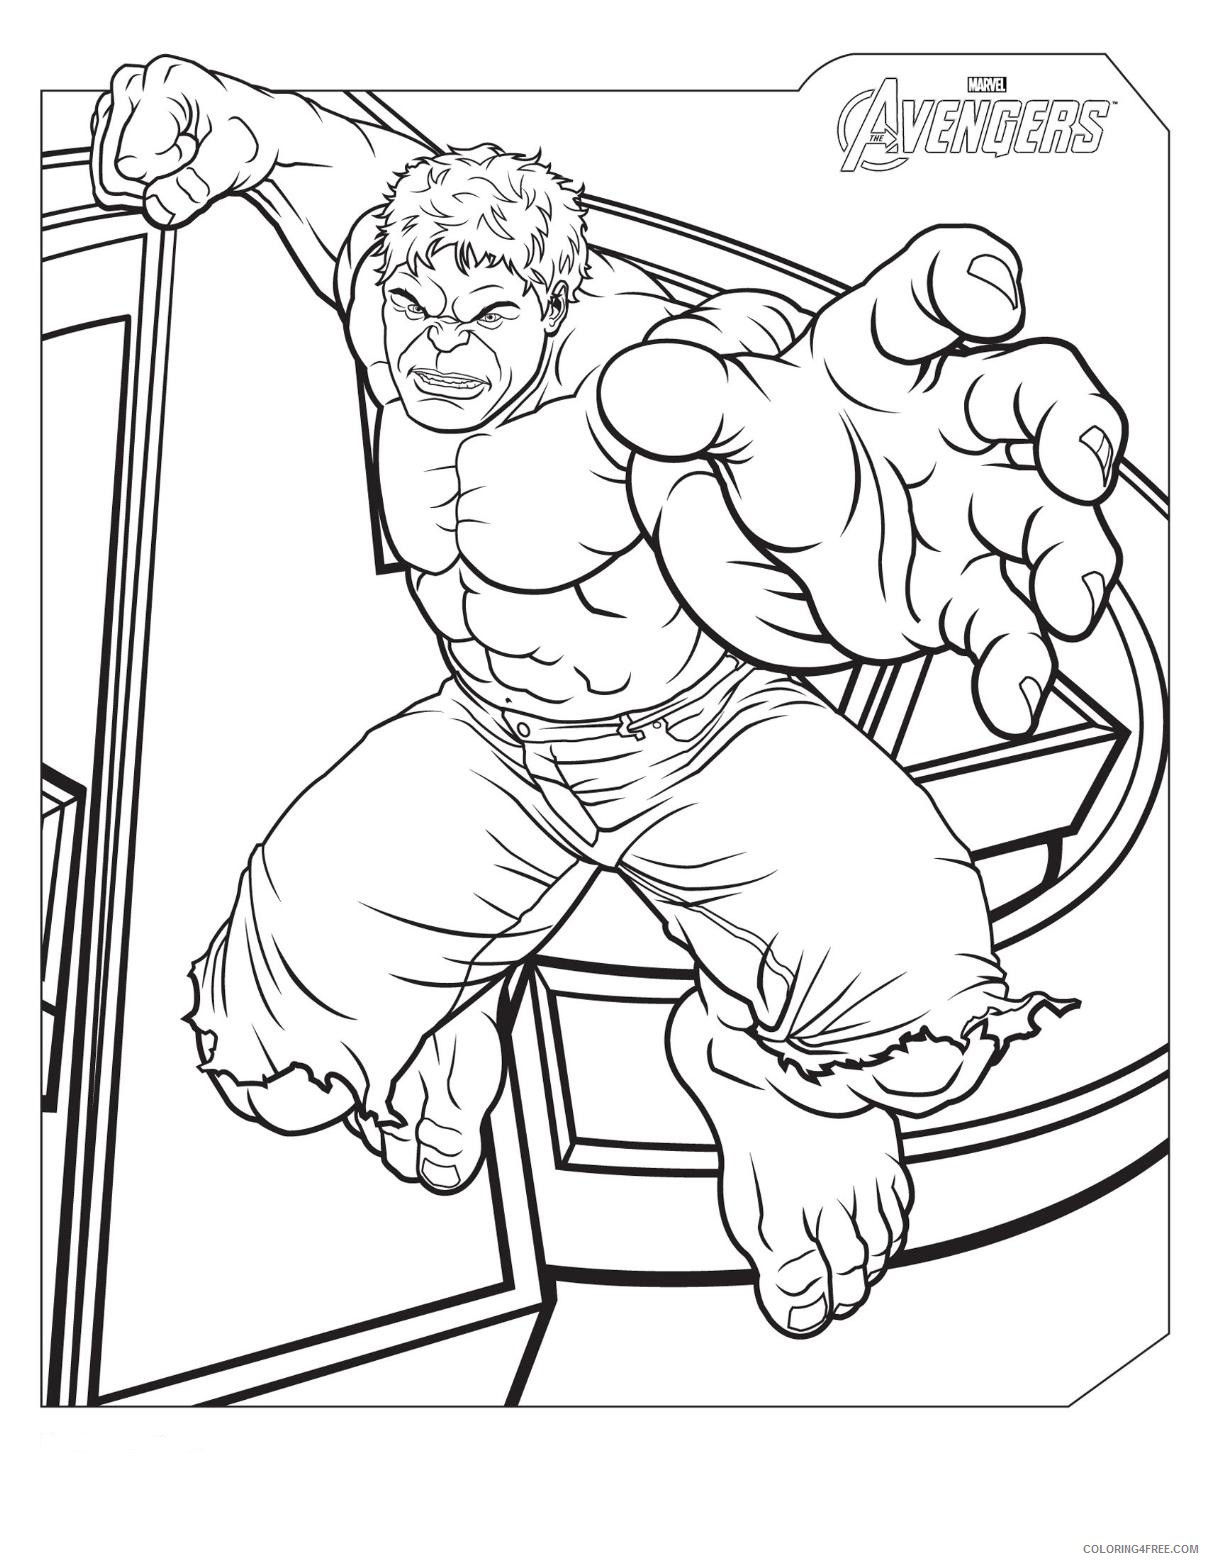 Hulk Coloring Pages Superheroes Printable 2020 Coloring4free